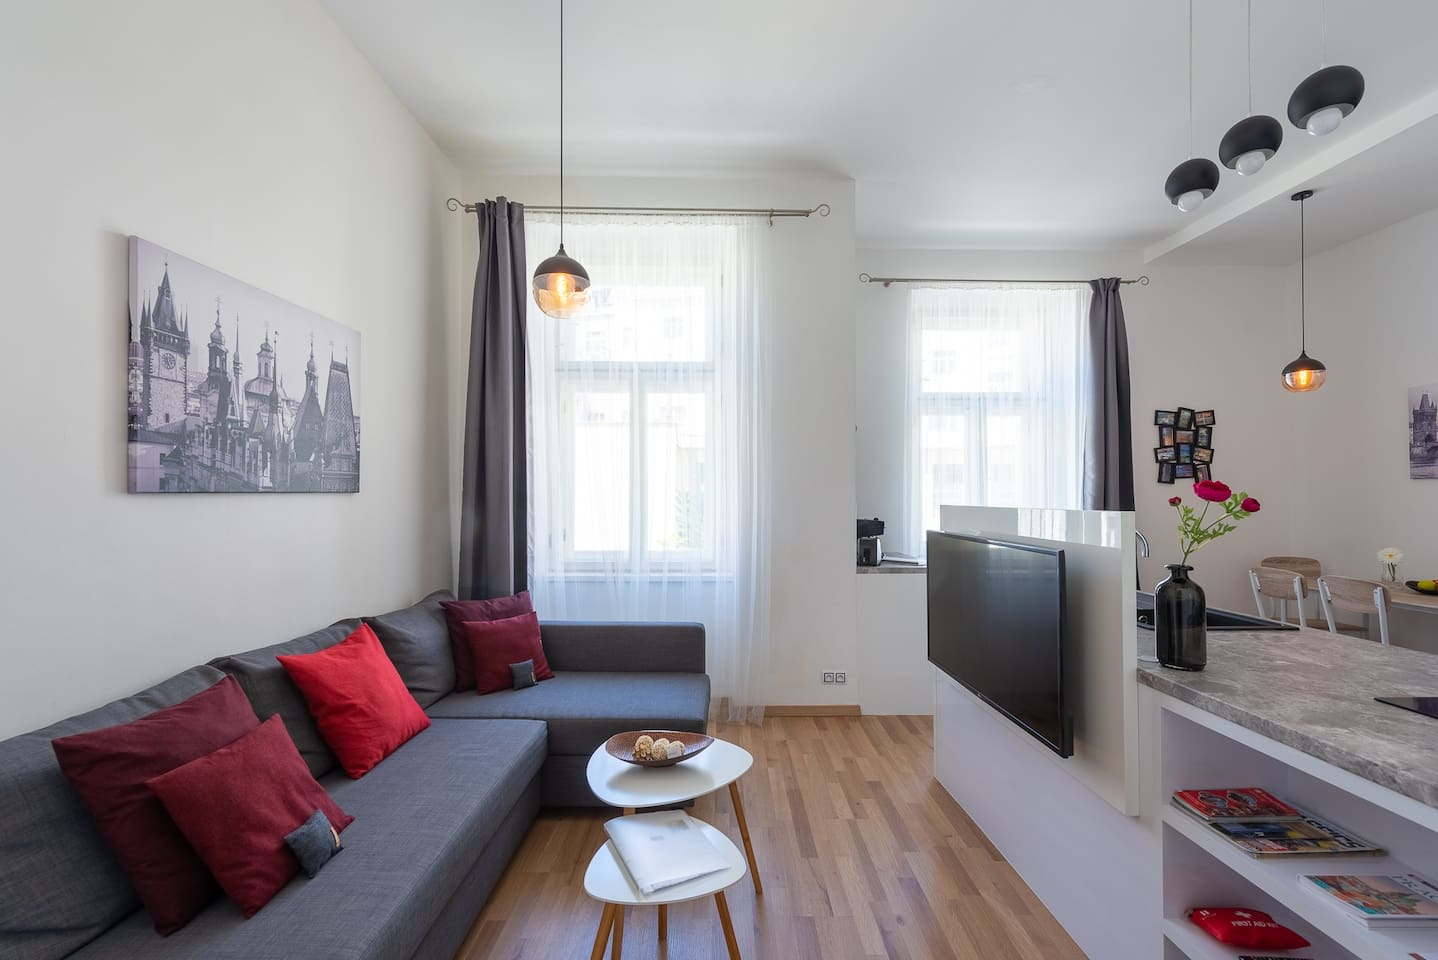 The apartment was fully renovated in 2017, with elegant and modern furnishings. Superb location 15min to the historic city center.